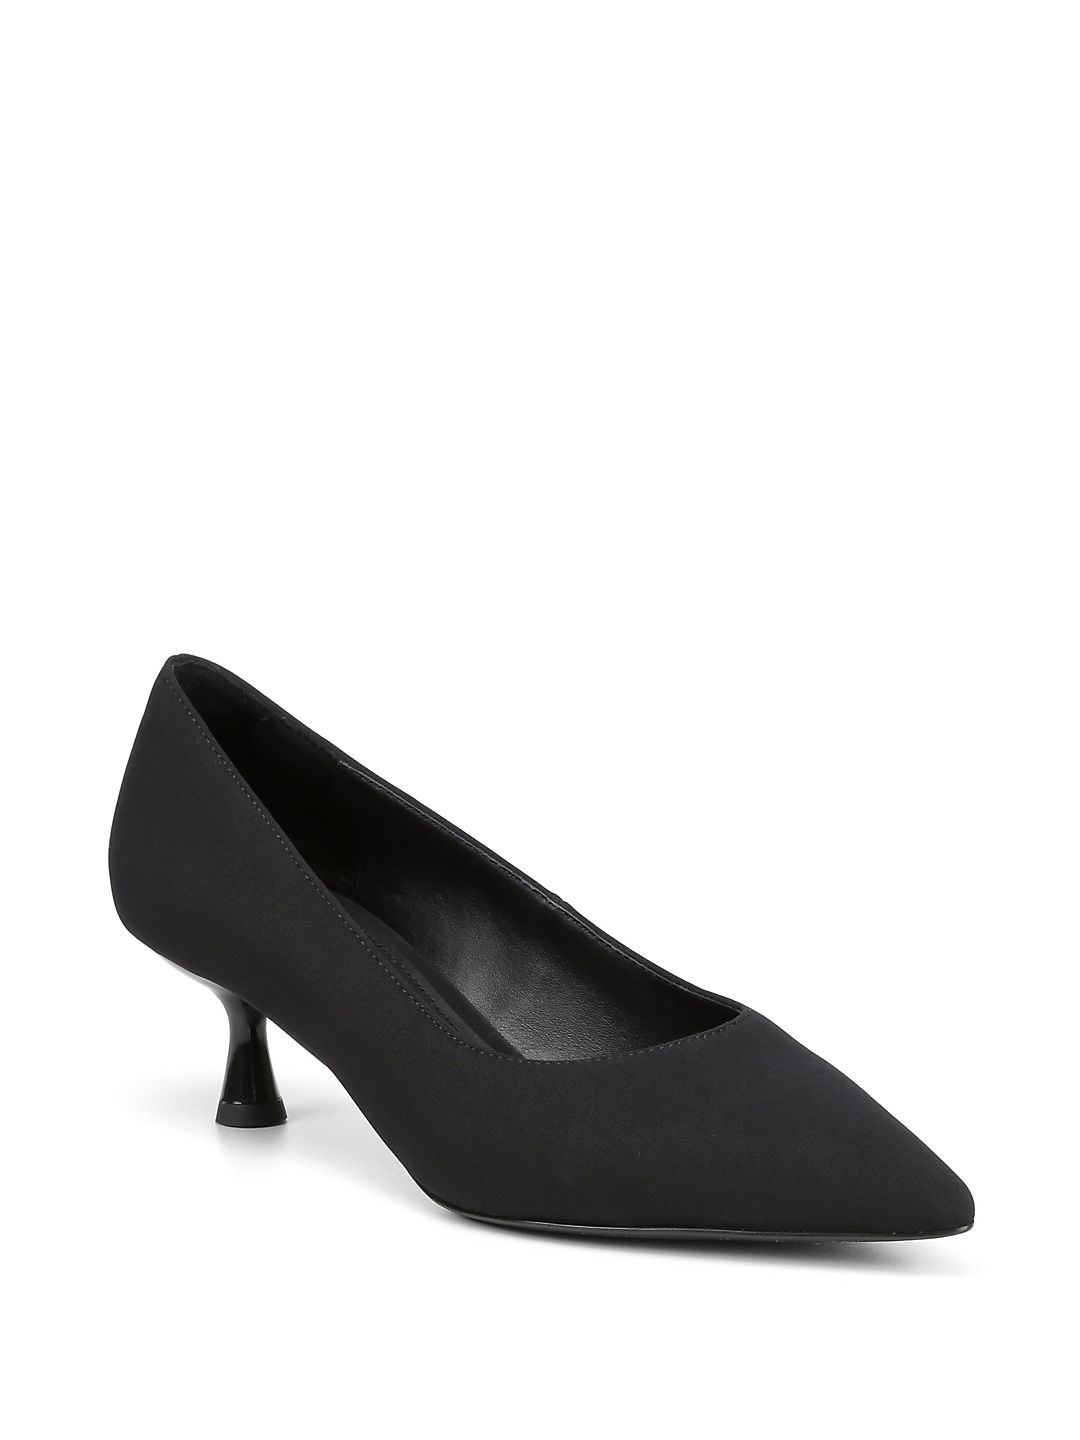 Bon Point-Toe Pumps